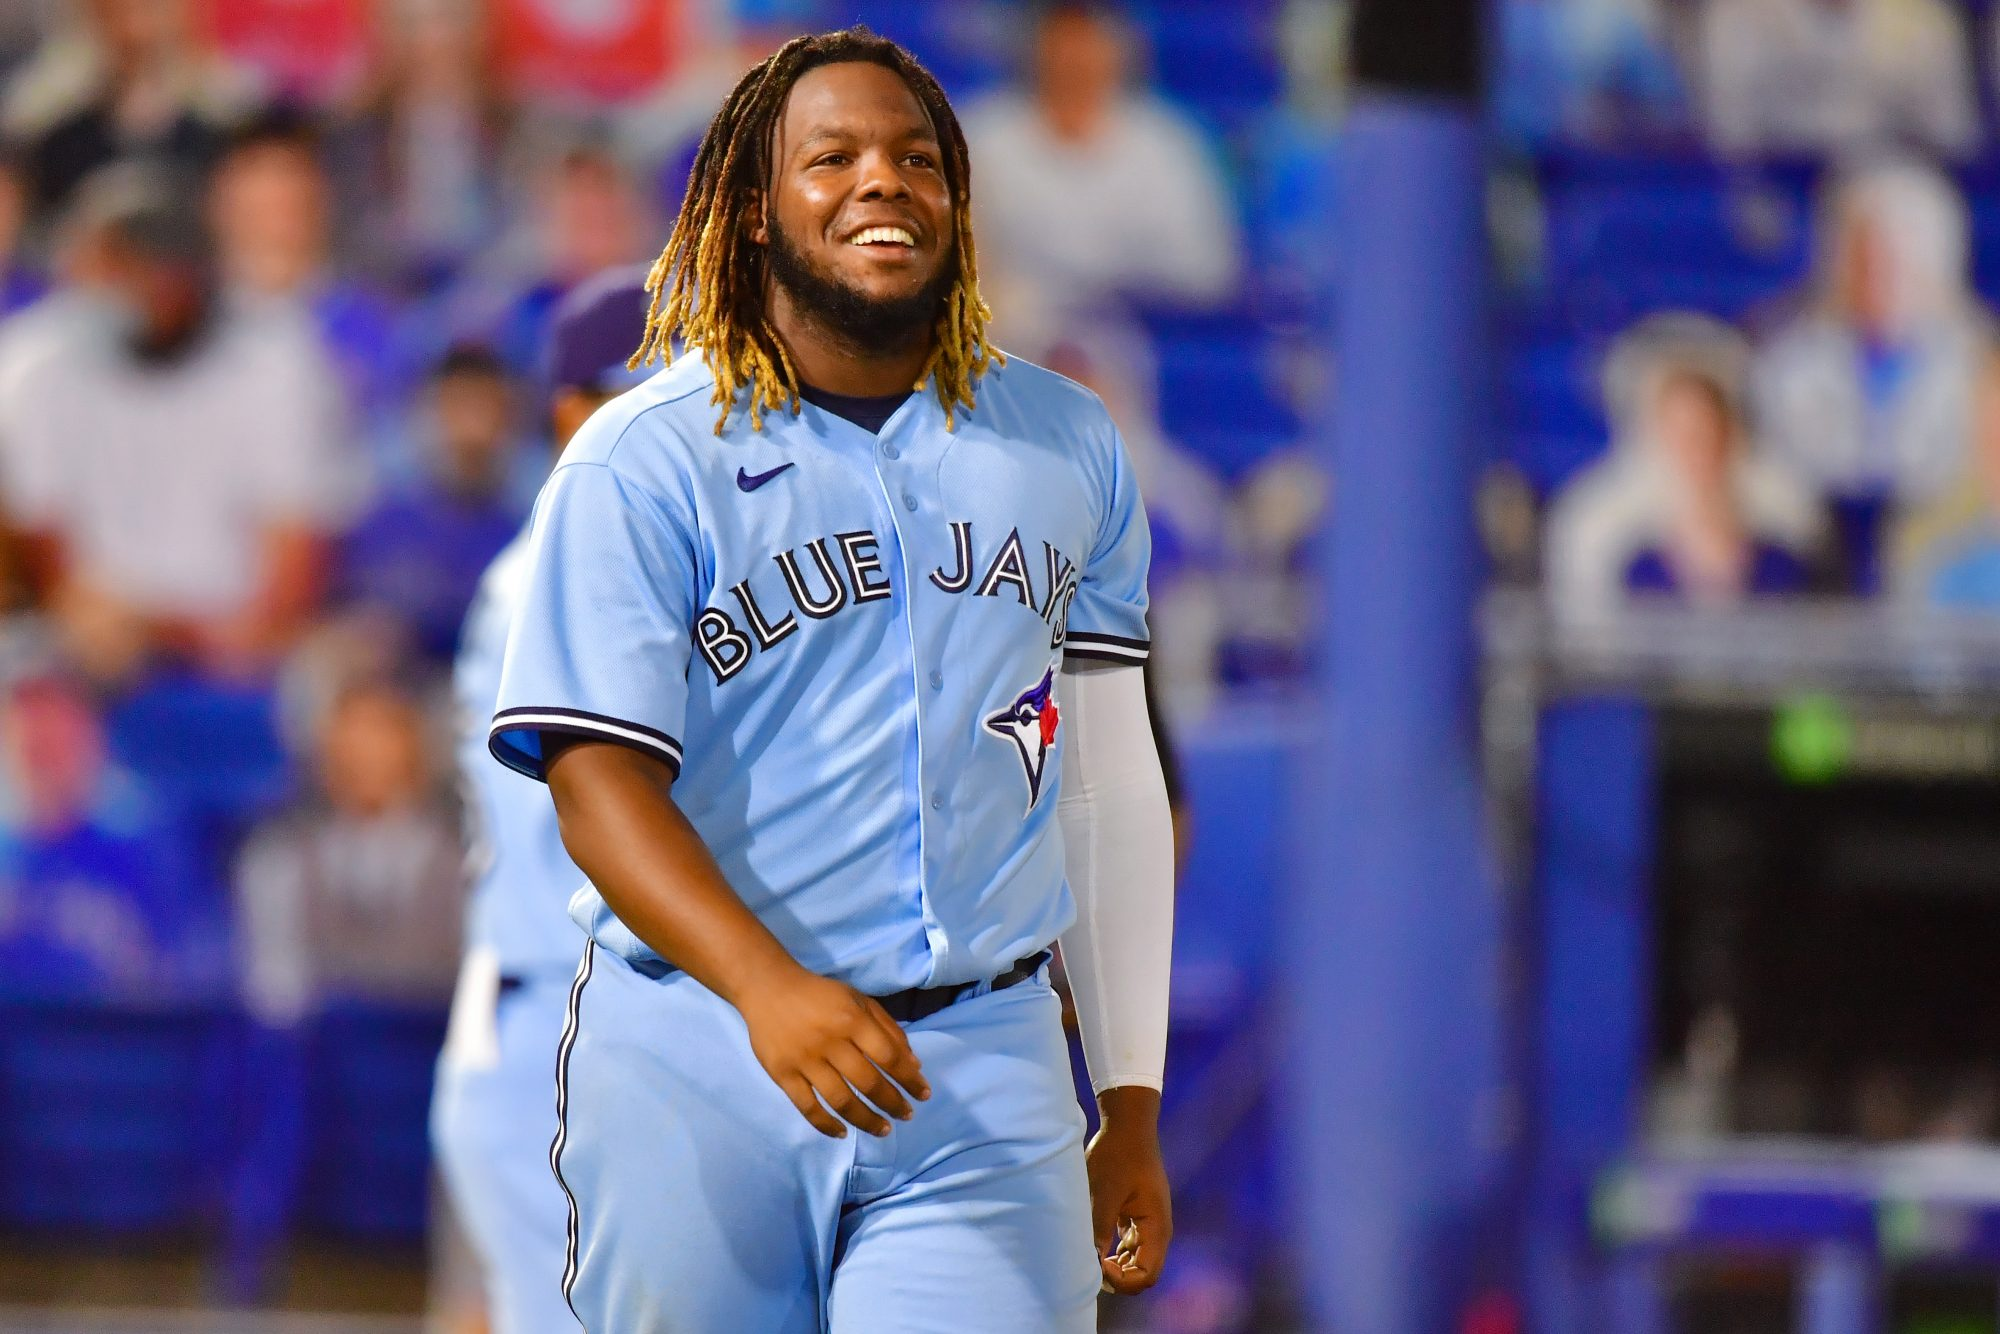 Toronto Blue Jays Player Talks 42-Lb. Weight Loss: 'I Can Do a Lot of Things I Couldn't Do Before'